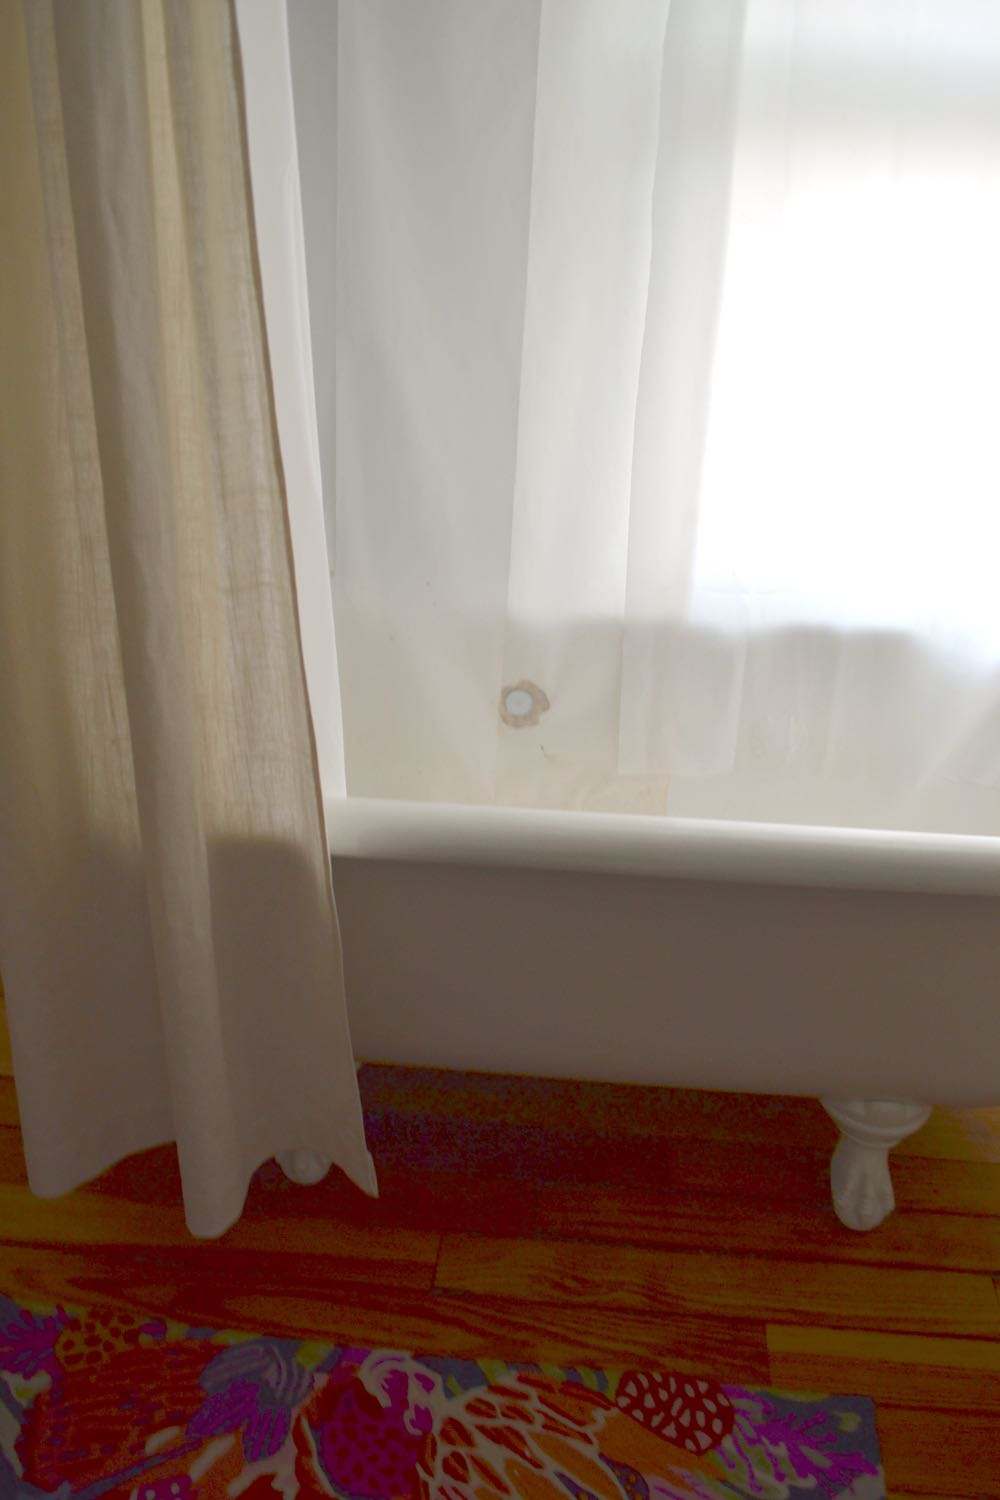 Shower Curtain Liner Clawfoot Tub5